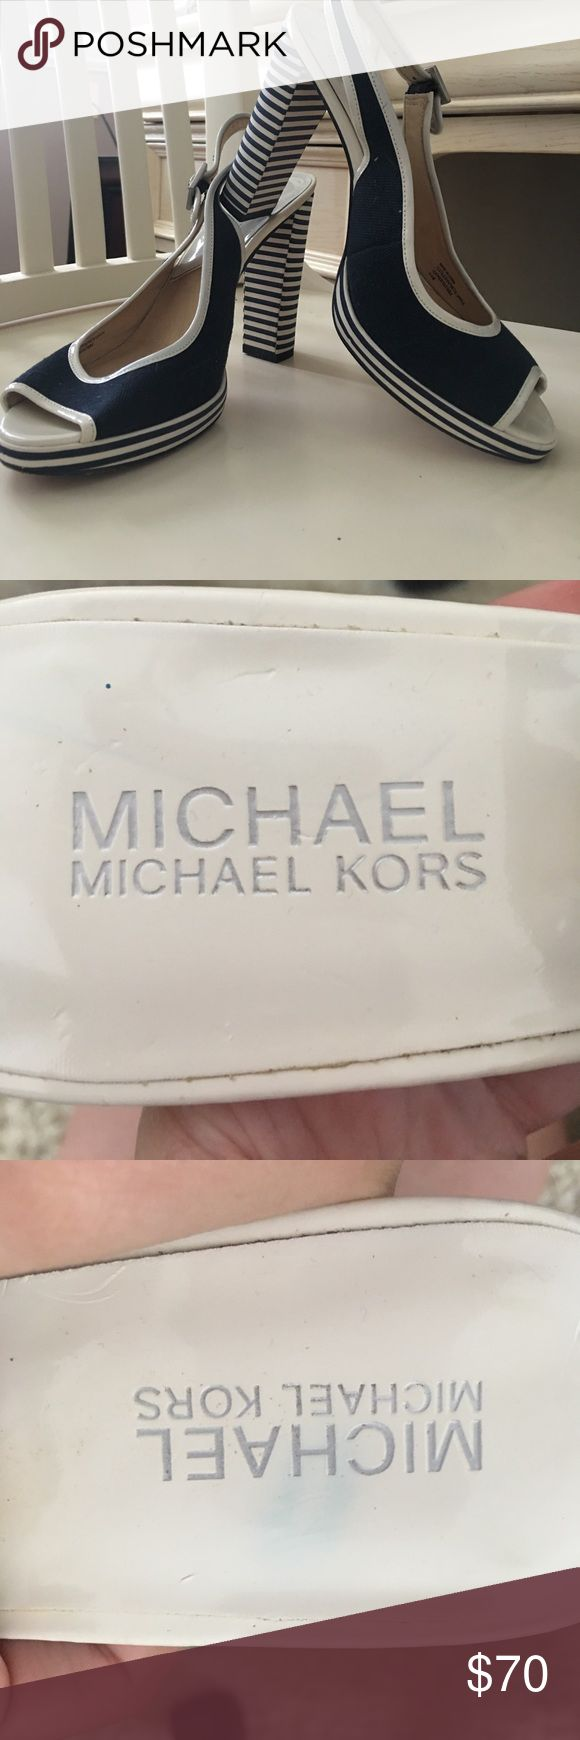 Michael Kors High Heels Only worn a few times. All wear to shoes is documented in pictures and misty on the bottom of shoes. Super adorable for summer, nautical theme or any summer holiday! Michael Kors Shoes Heels